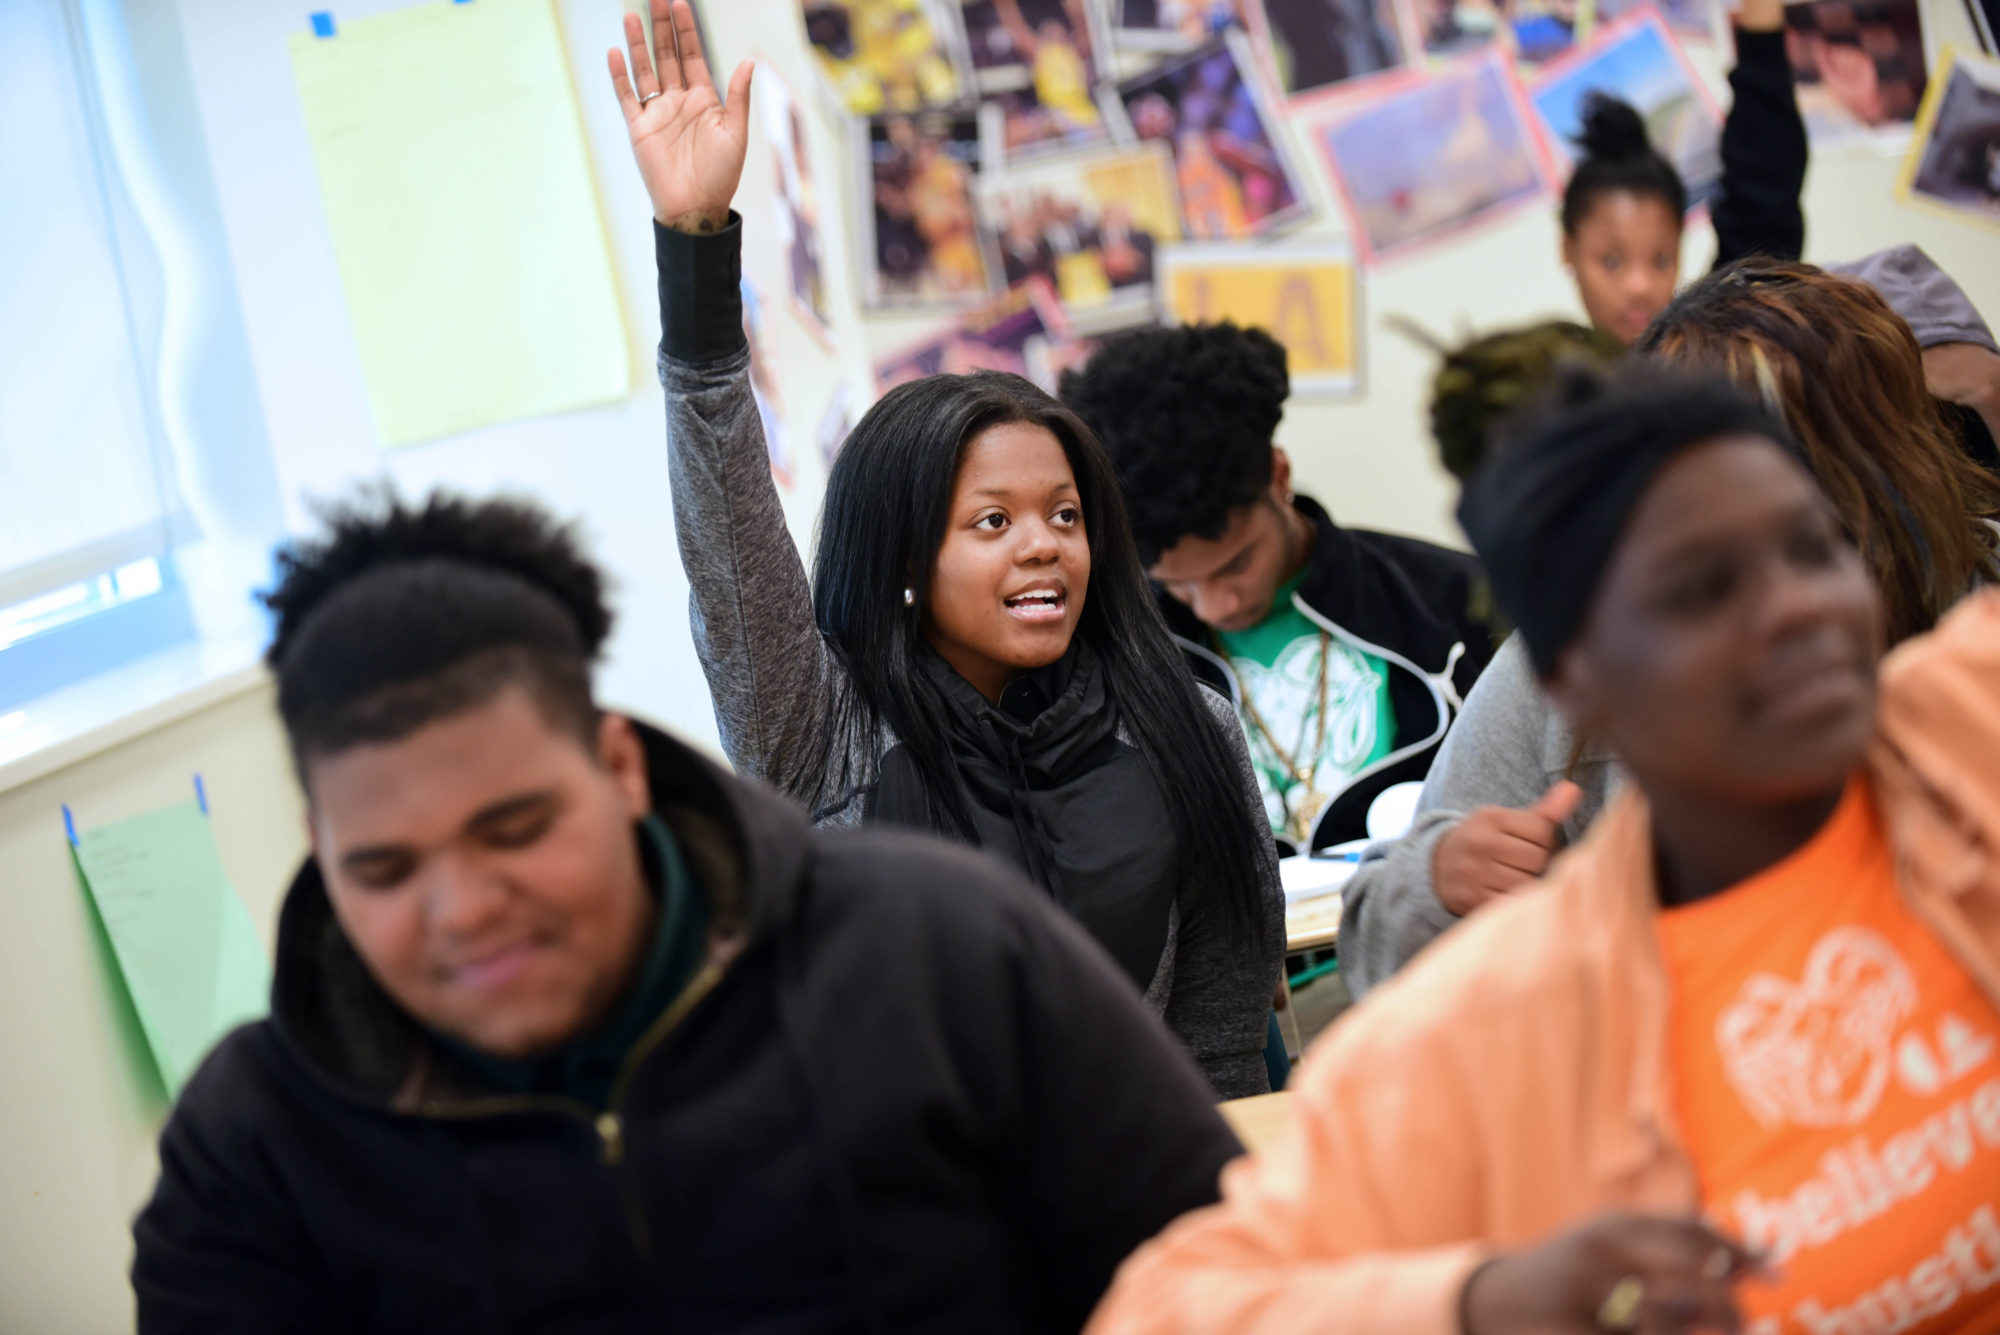 Held back, but not helped - The Hechinger Report